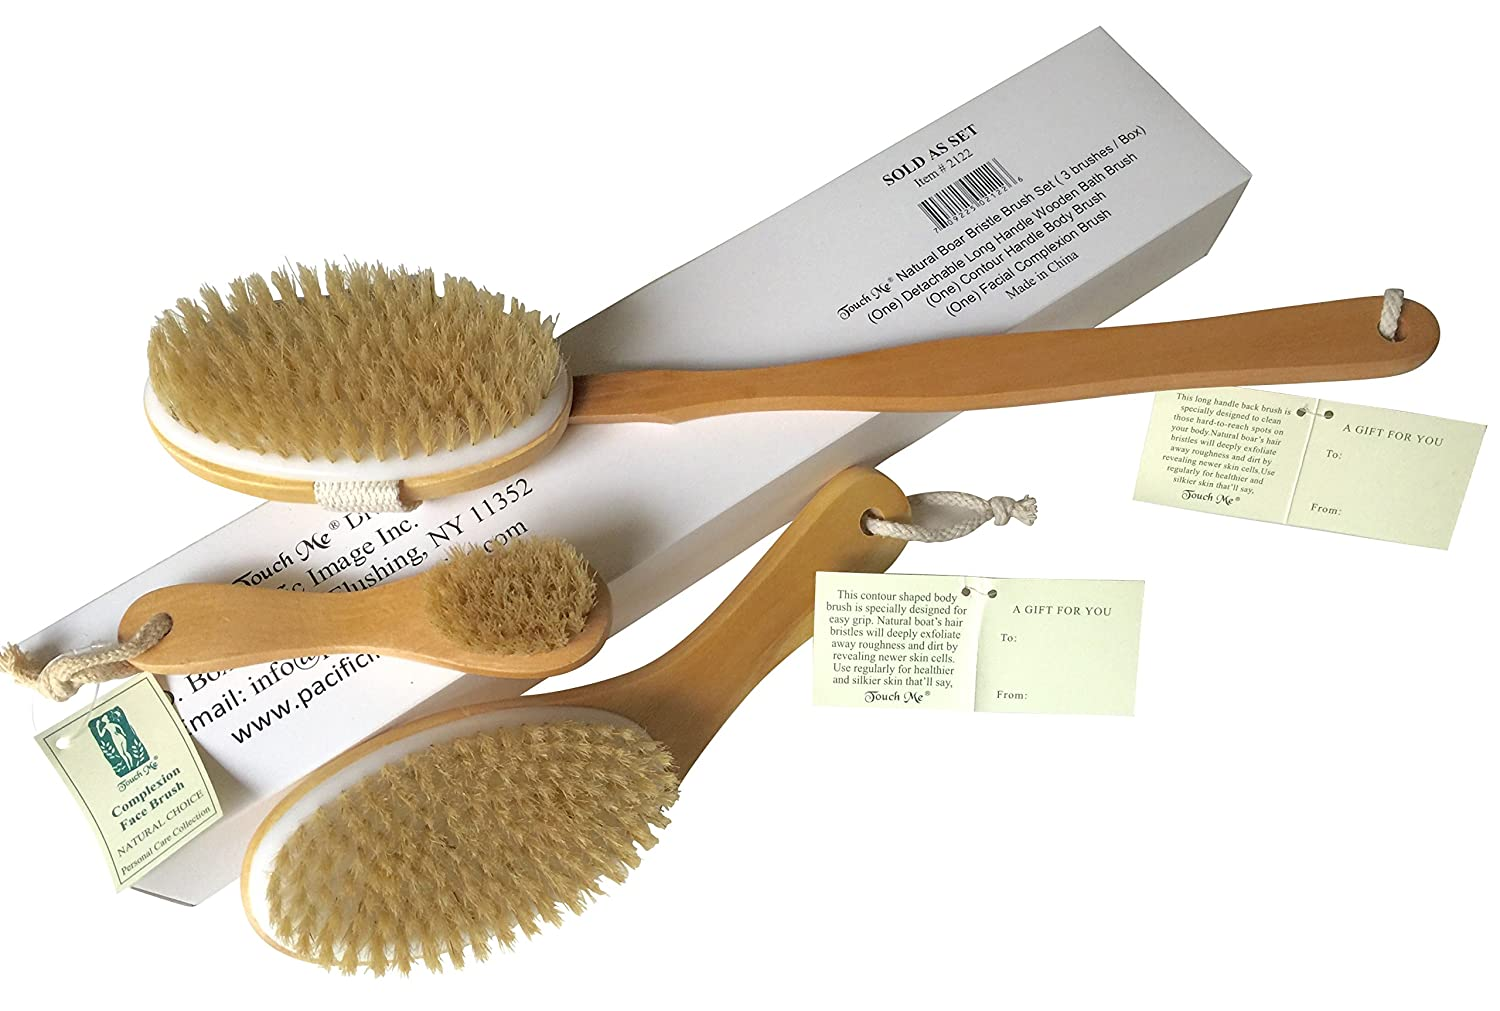 3 Brushes/Set Touch Me 100% Natural Boar Bristle detachable Long Handle Wooden Dry Bath Body Back Brush, Contour Handle Dry Body Brush and Facial Complexion Brush, Premium Quality, Perfect Spa Gift 2122